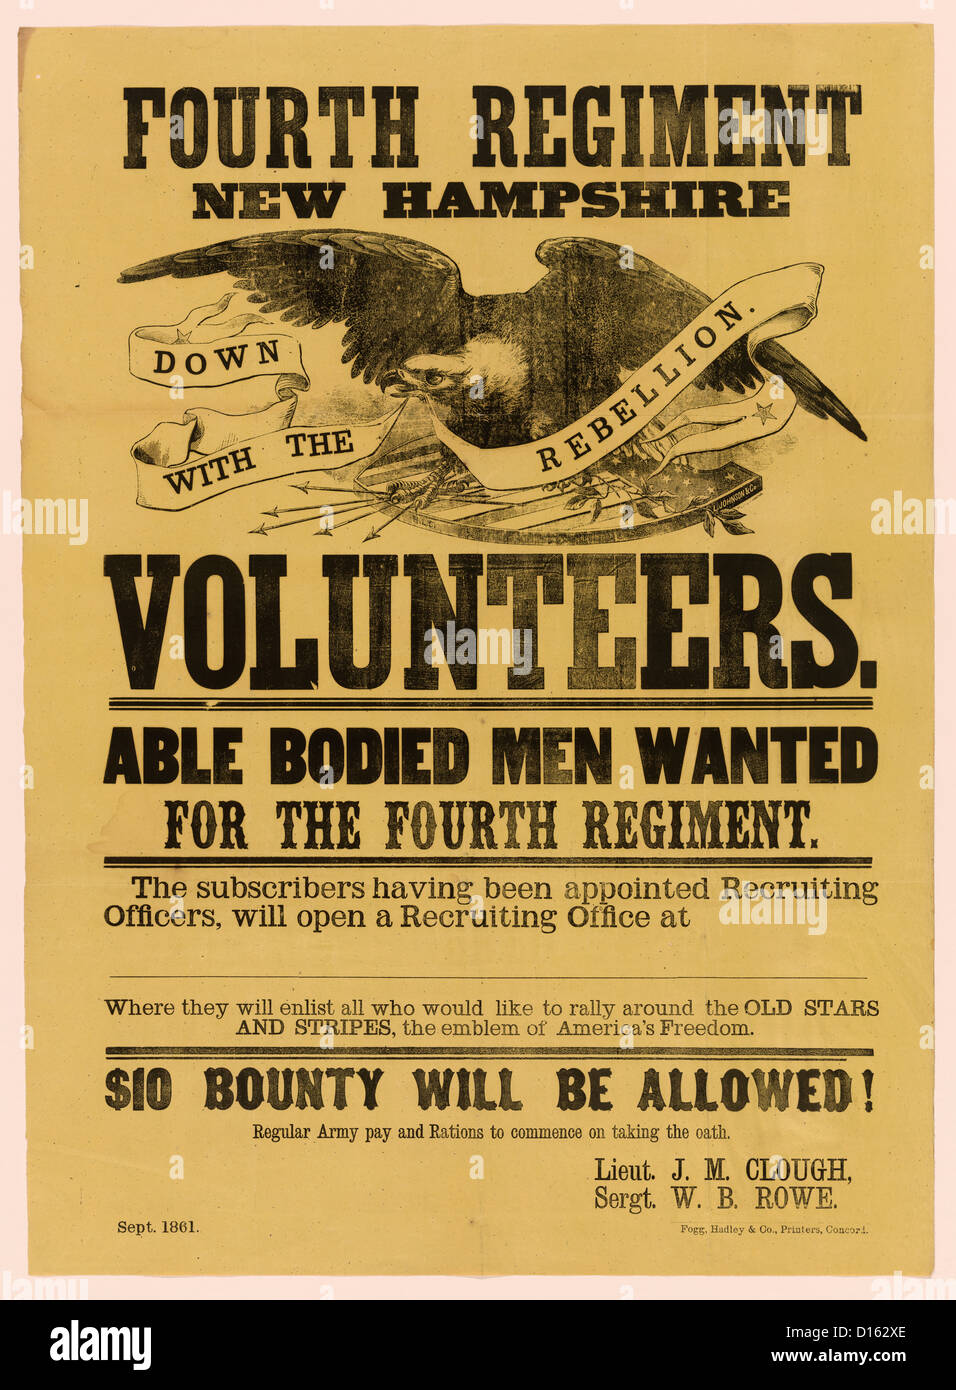 Fourth Regiment New Hampshire Volunteers -Recruitment Poster USA Civil War, 1861 - Stock Image